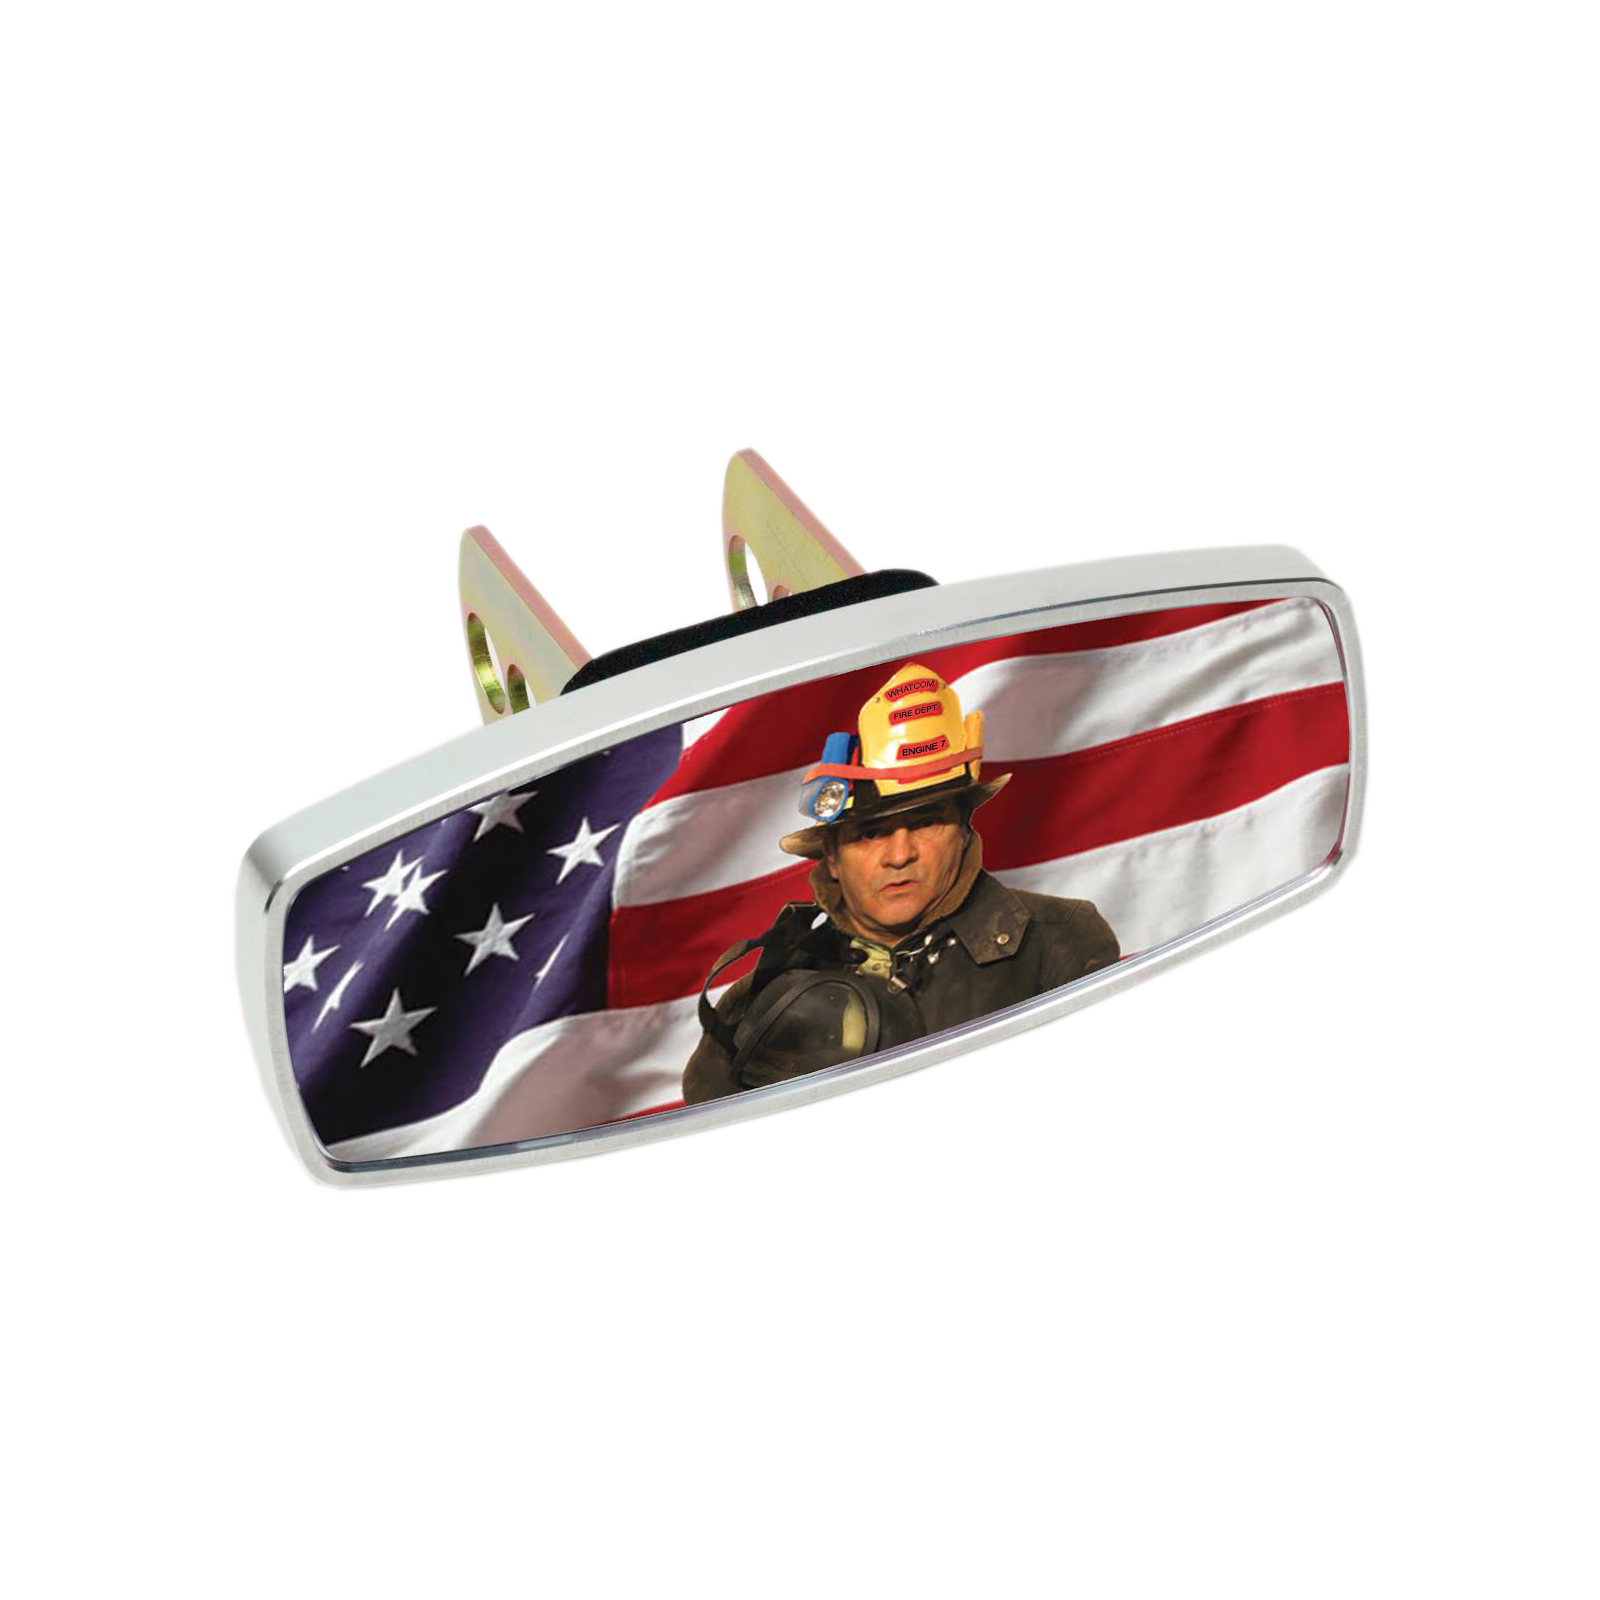 HitchMate Premier Series Hitch Cap Cover - Flag and Fireman